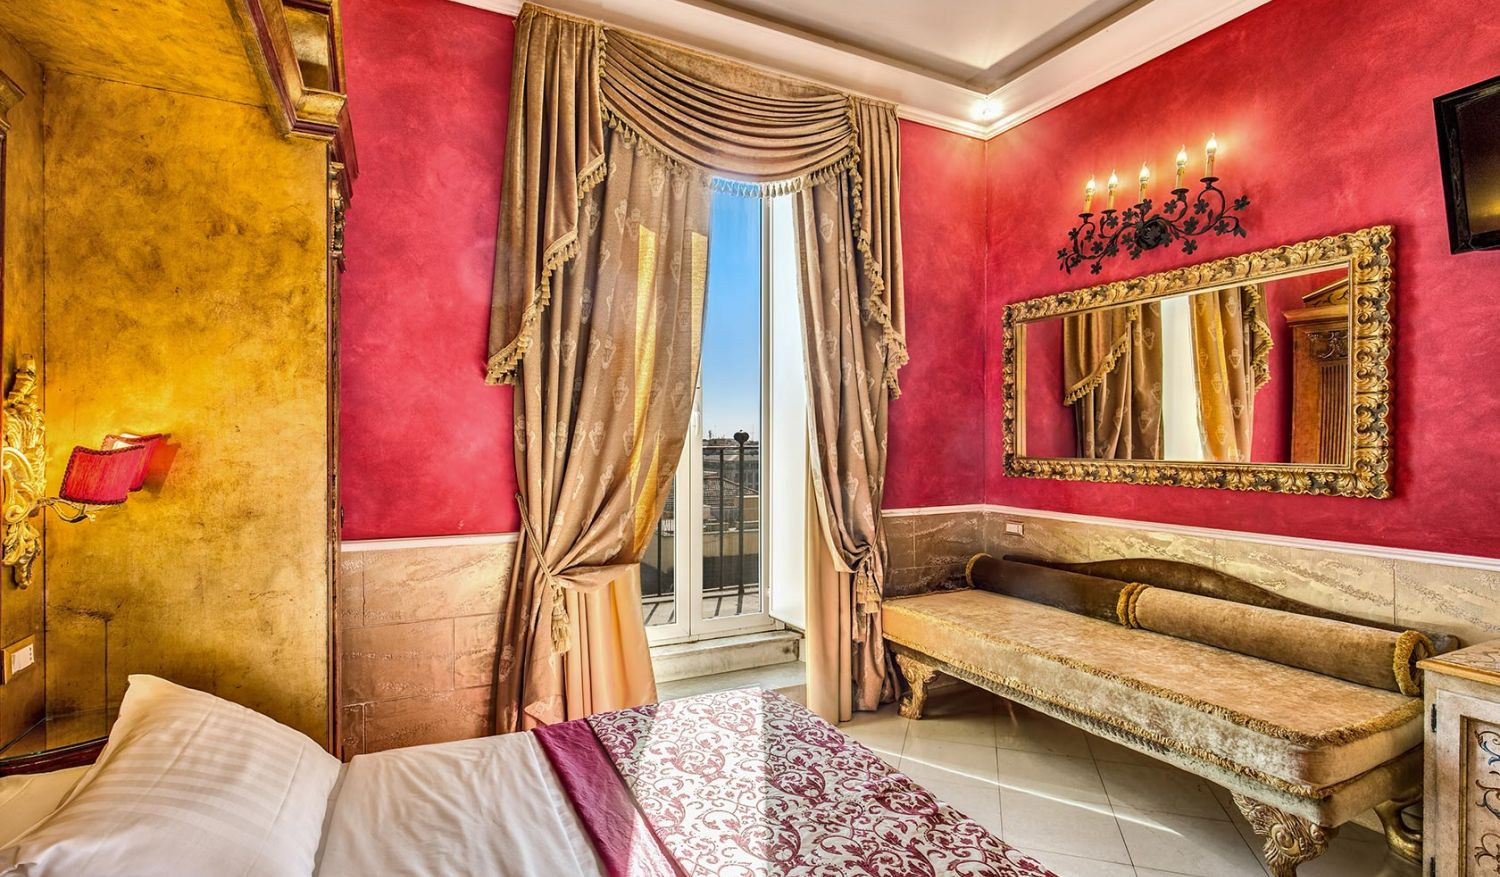 Rooms for holidays in Rome